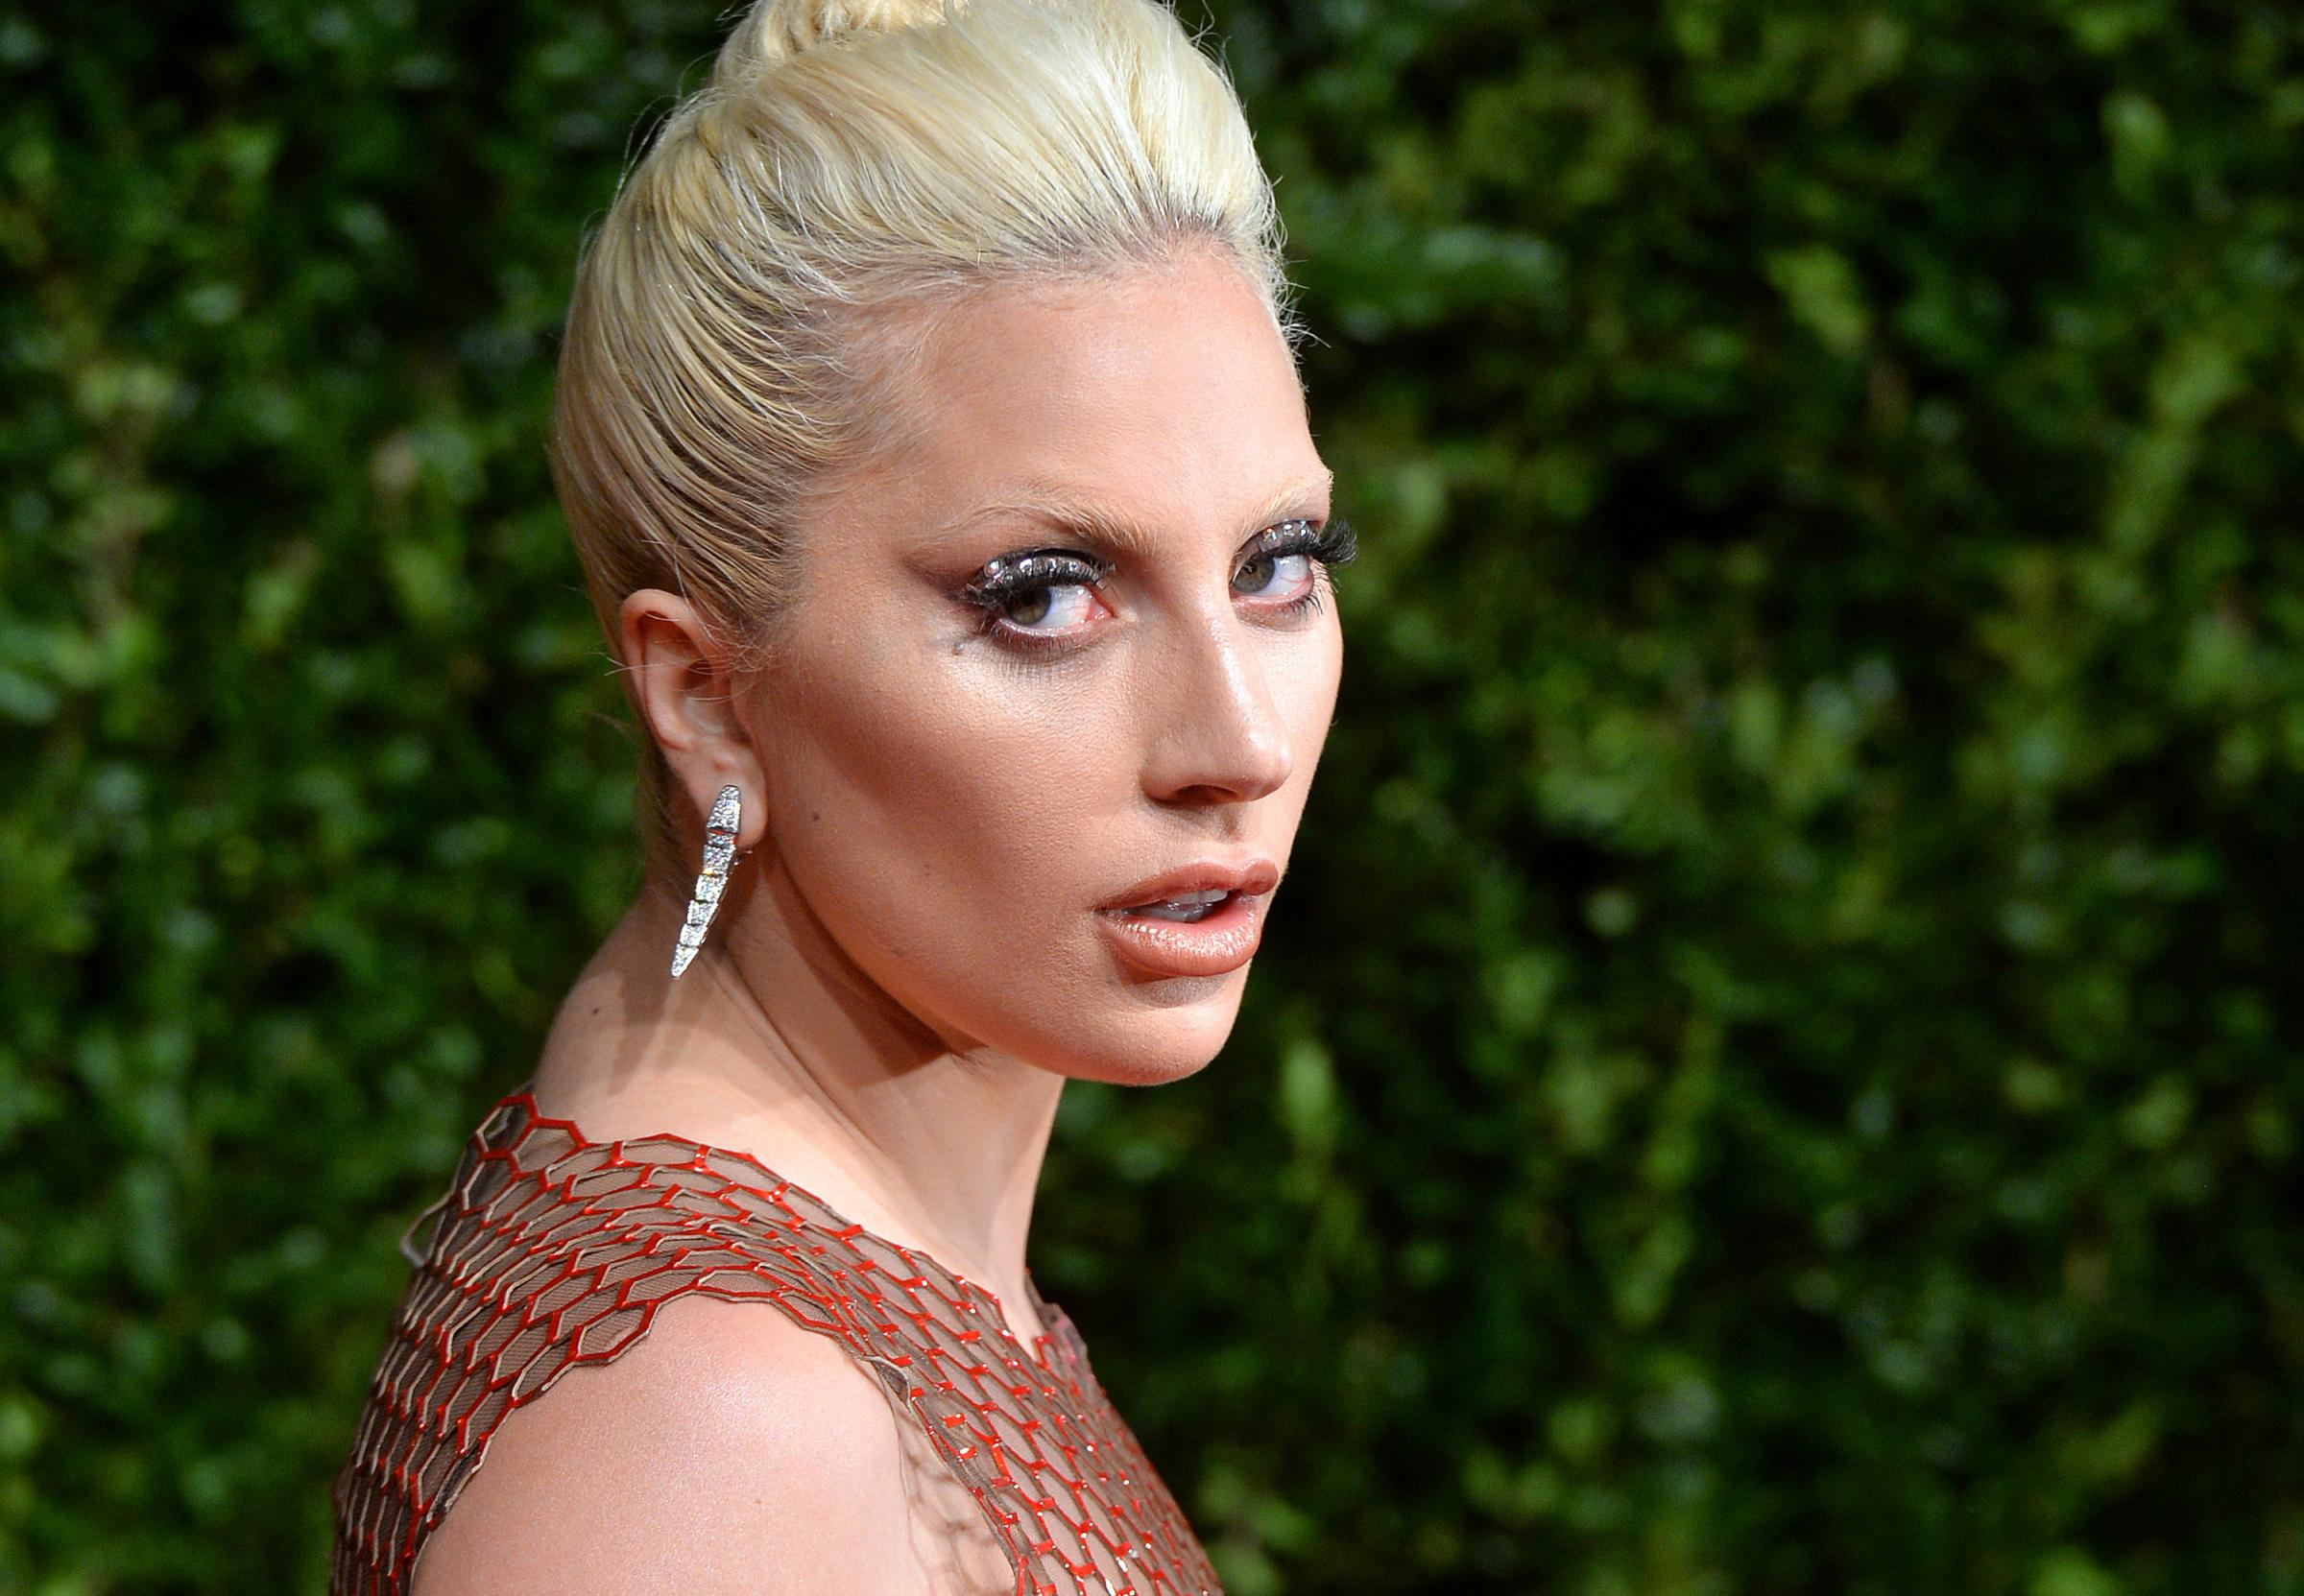 Lady Gaga was accused of only mentioning her rape in order to sell albums